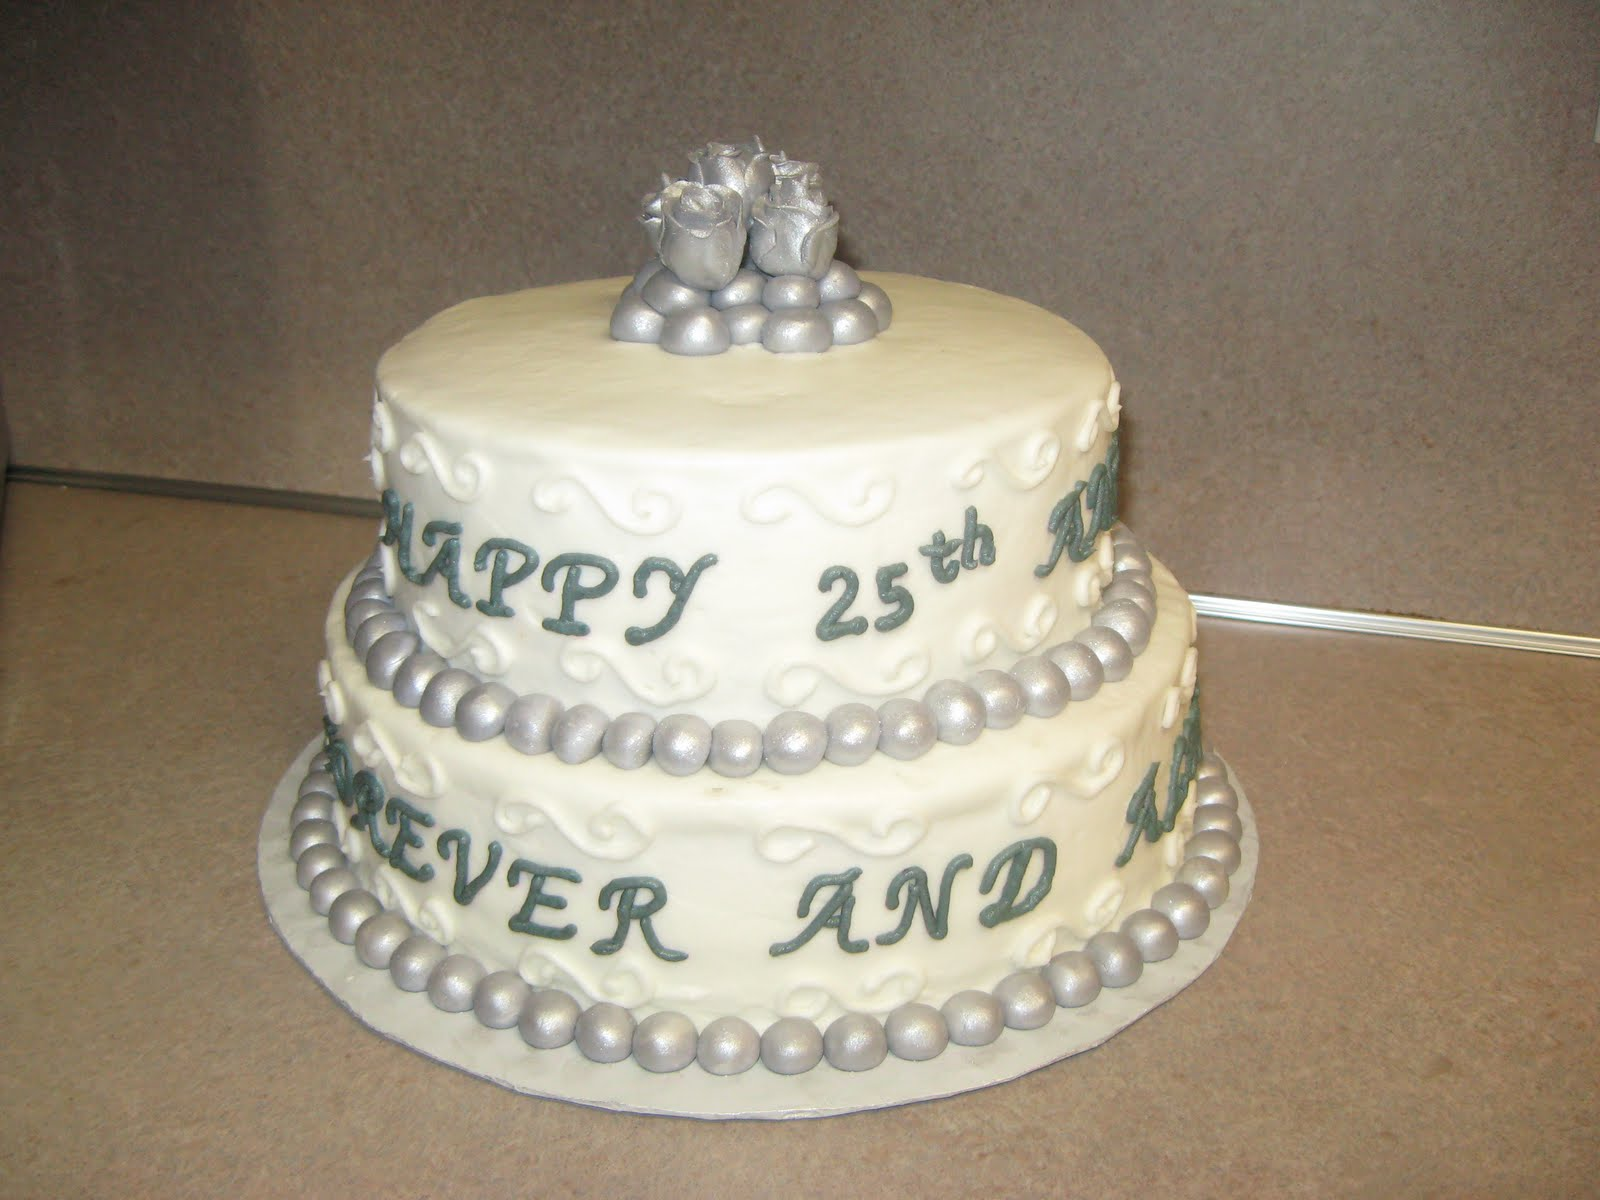 Delectable Sweets by the Smiths: 25th Anniversary Cake